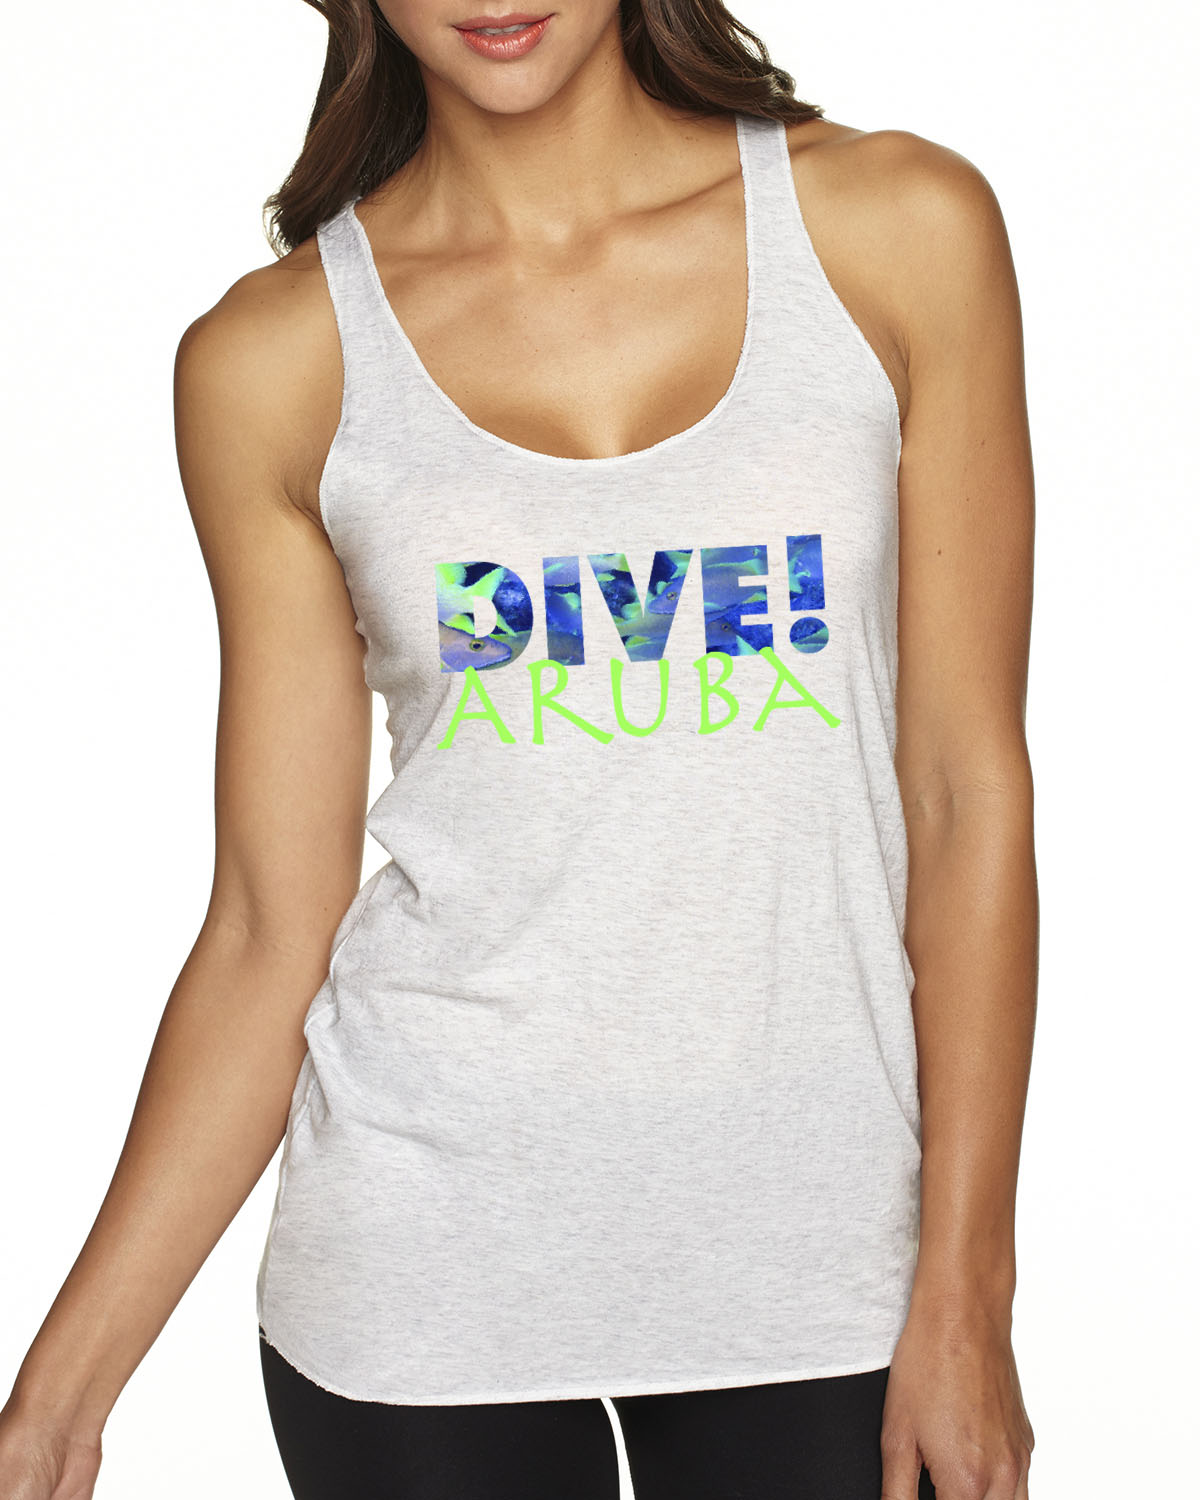 Women's Tri-blend racer-back DIVE scuba diving tank top (White)